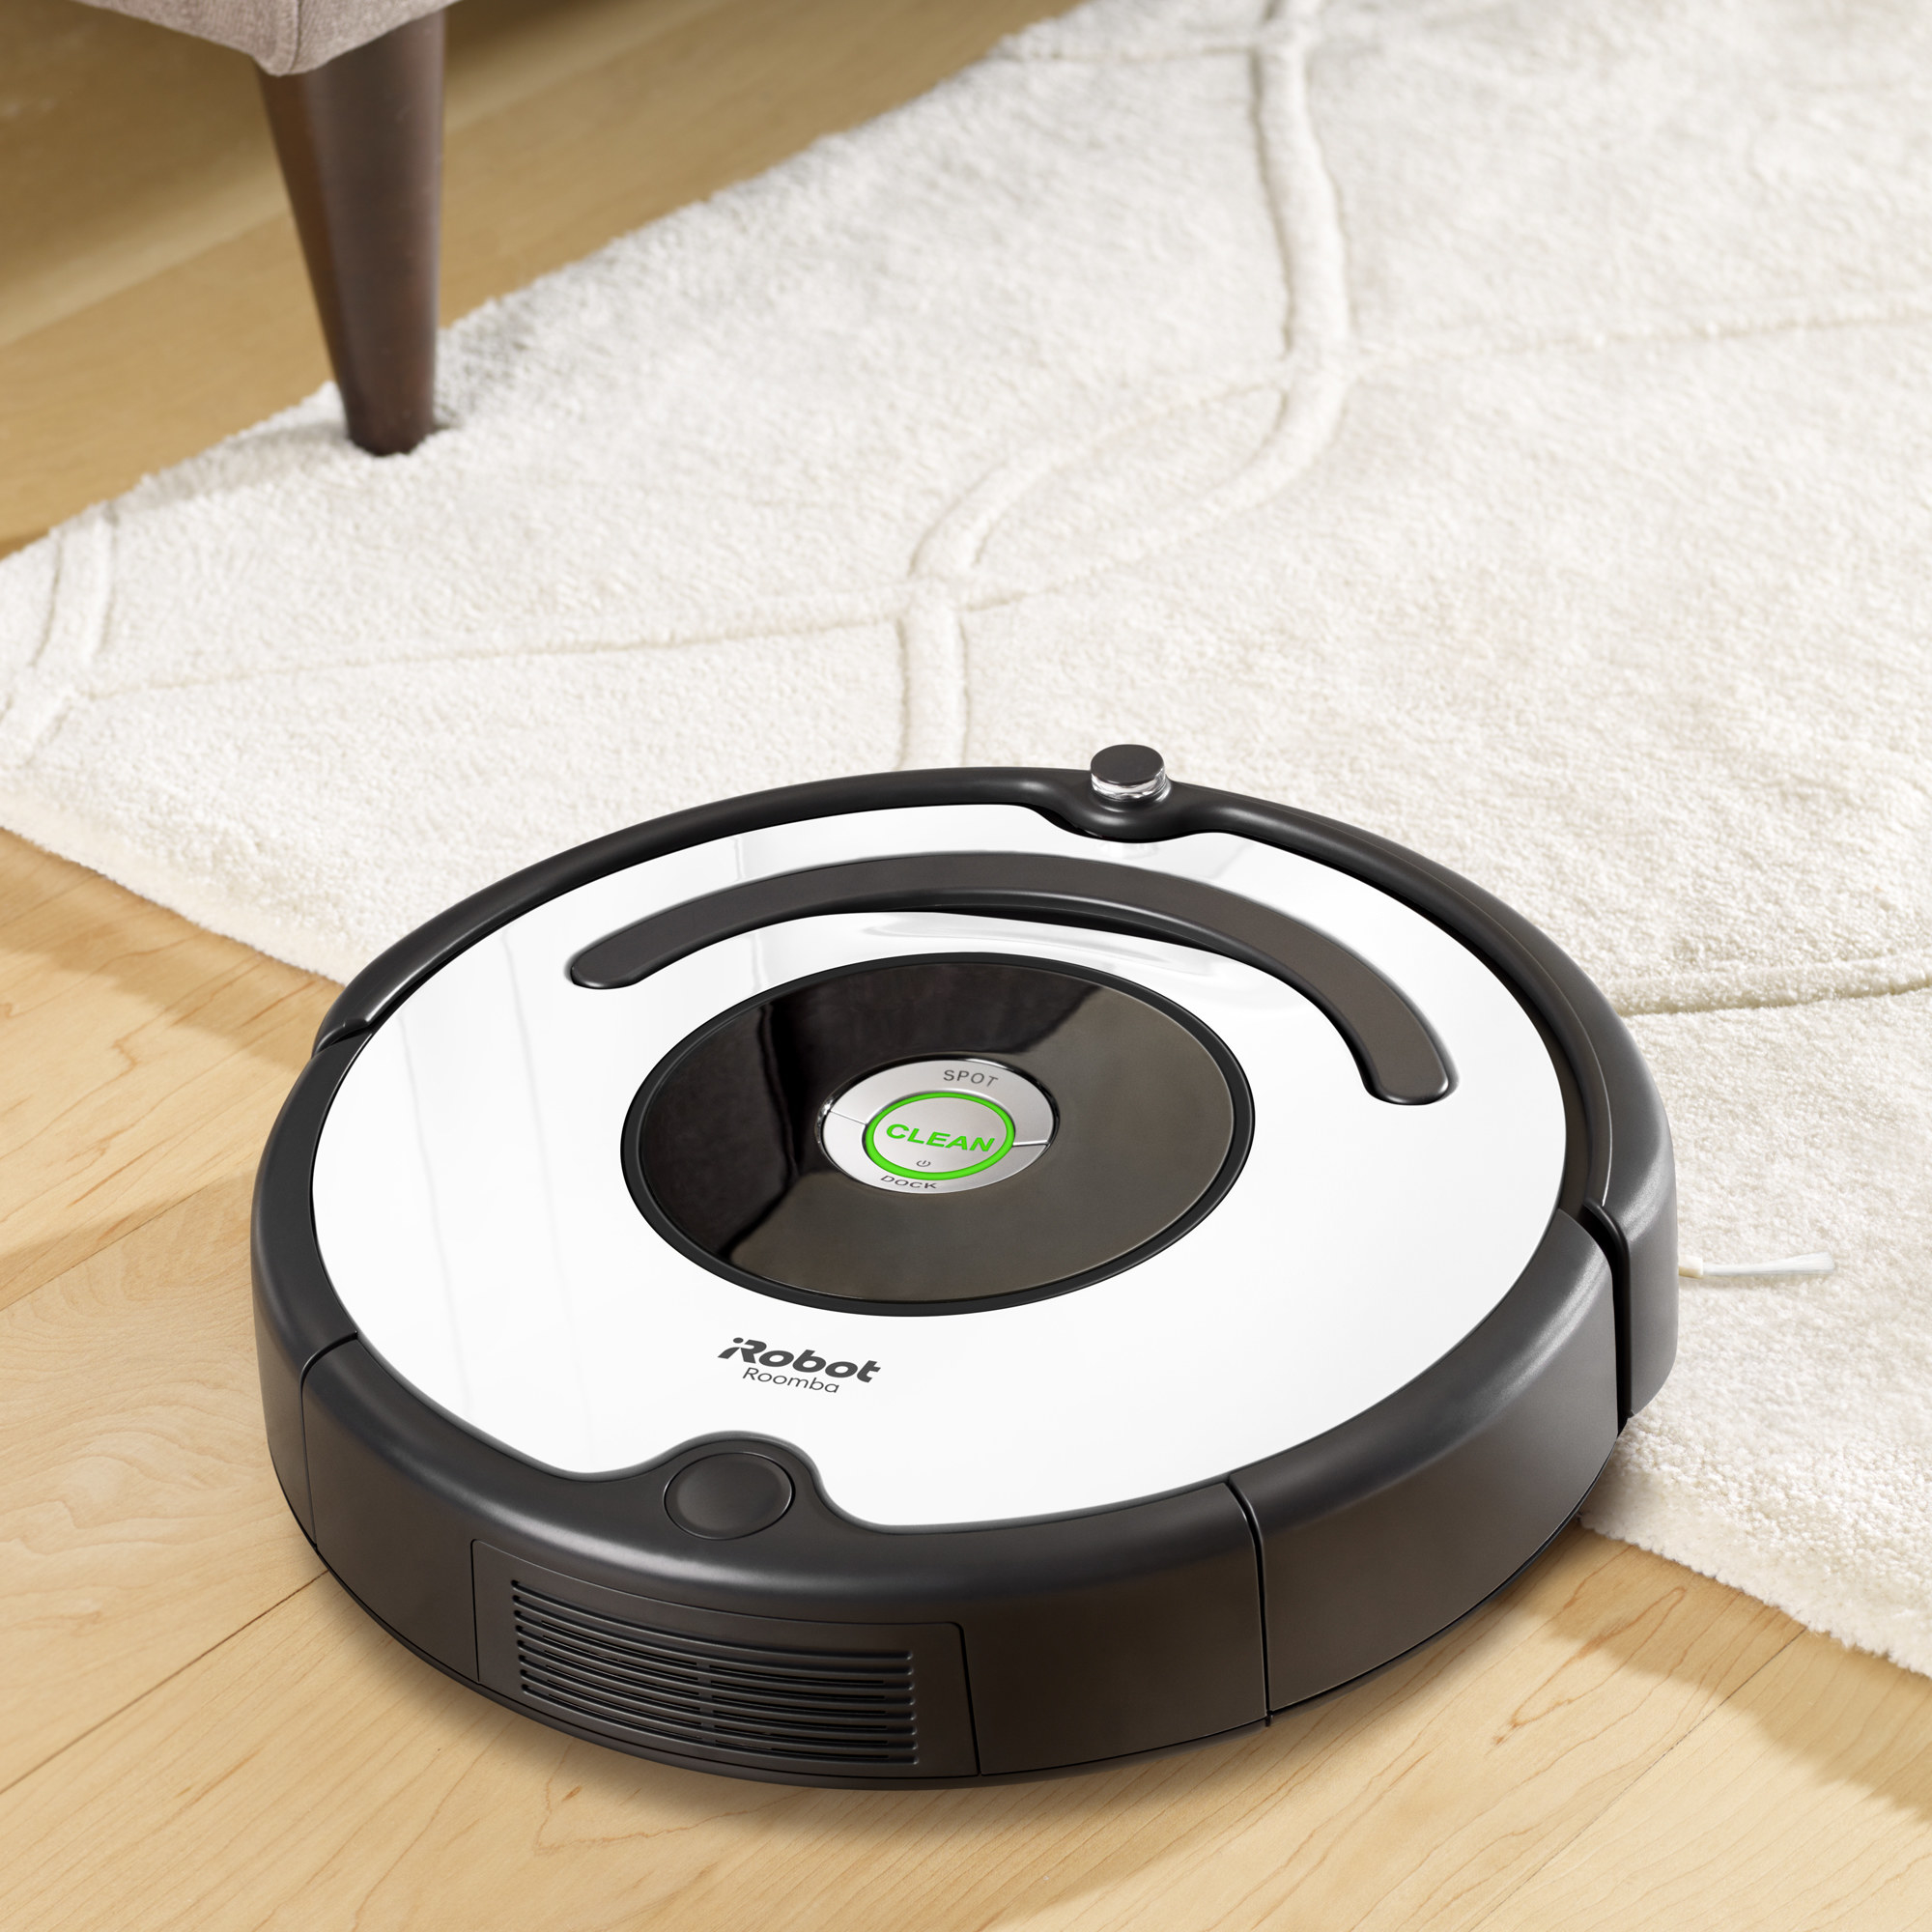 A black and white roomba on a carpet and hardwood floor